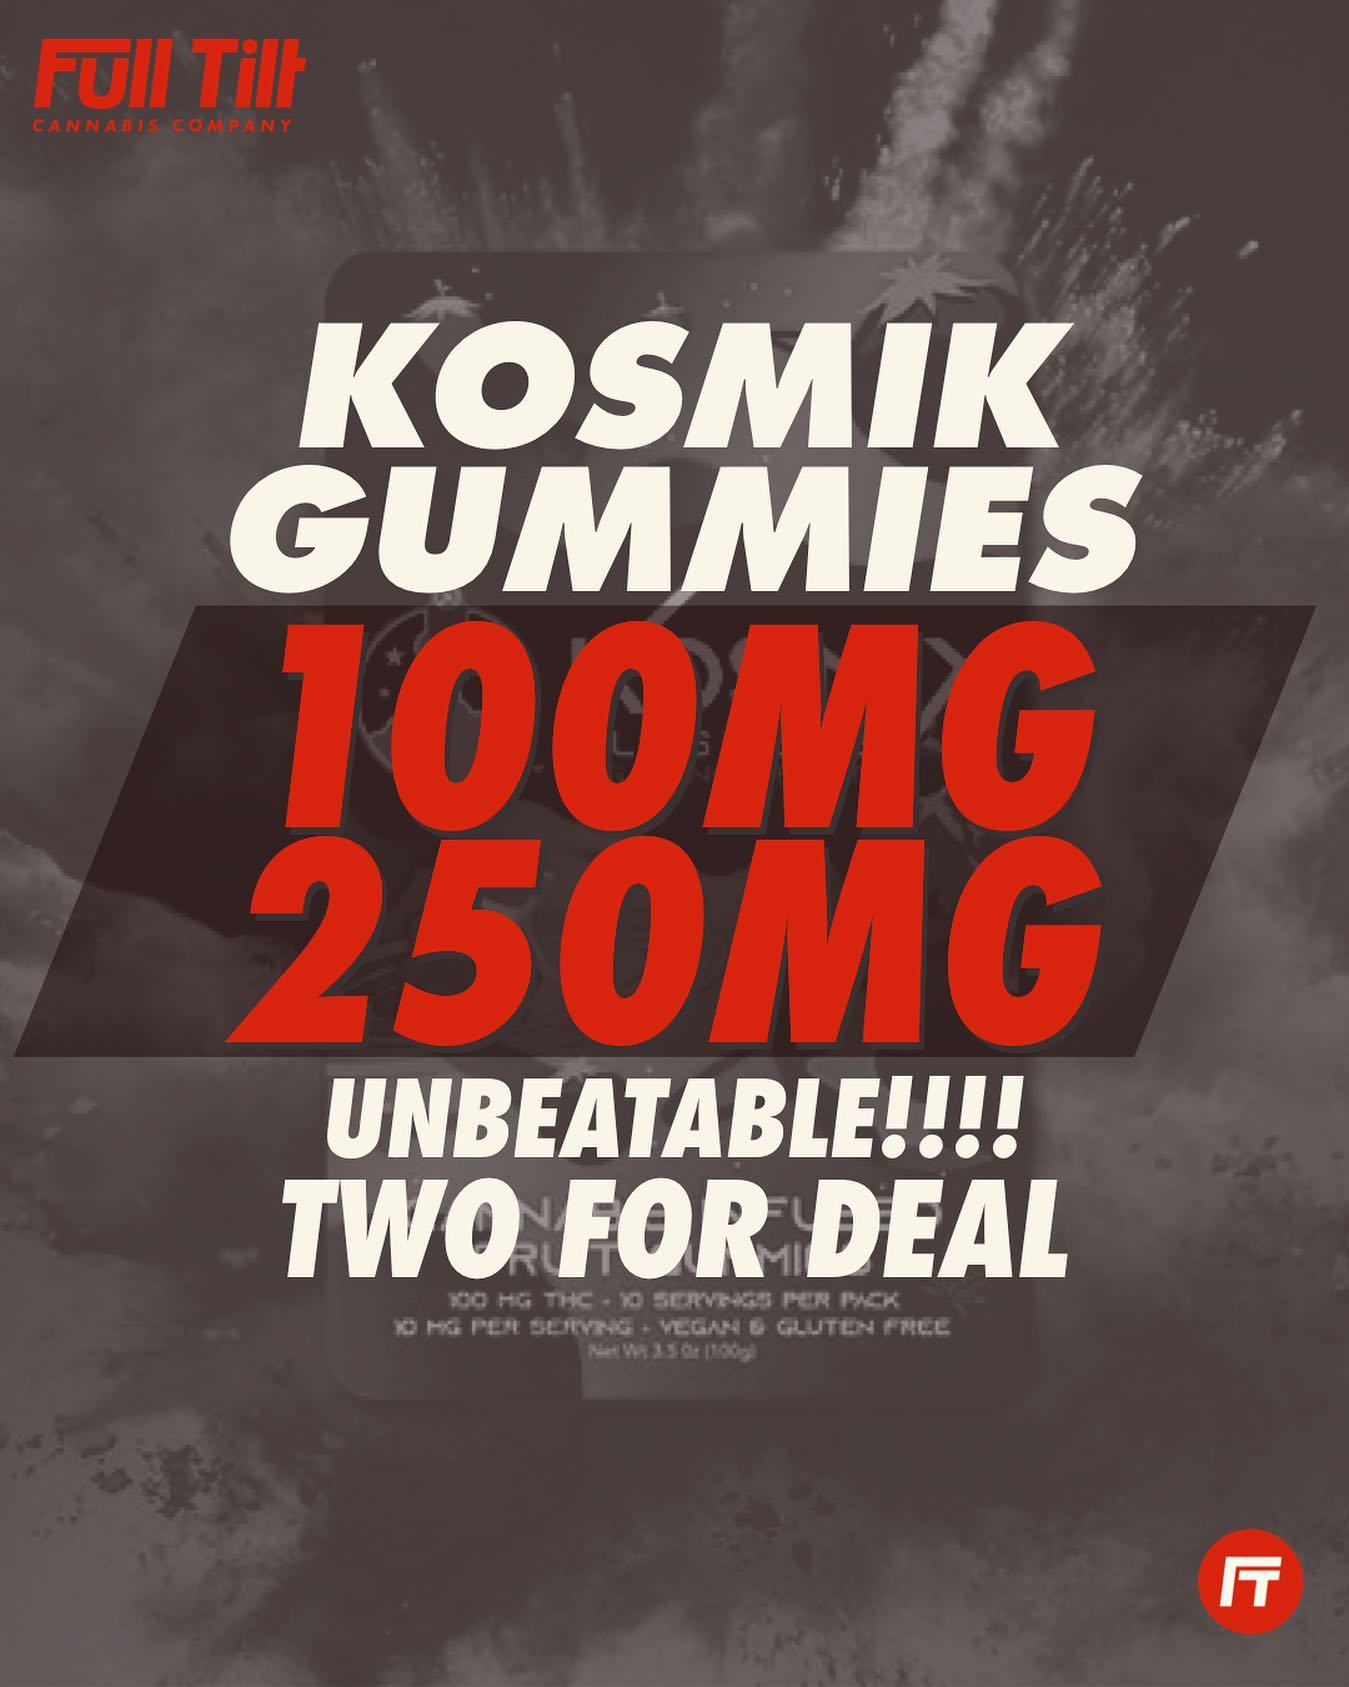 Set up for an epic weekend with our intergalactic deals on @kosmikbrands gummies! Visit One of our dispos in Grove Vinita or Miami today! #miamiok #groveok #vinitaok #livefulltilt